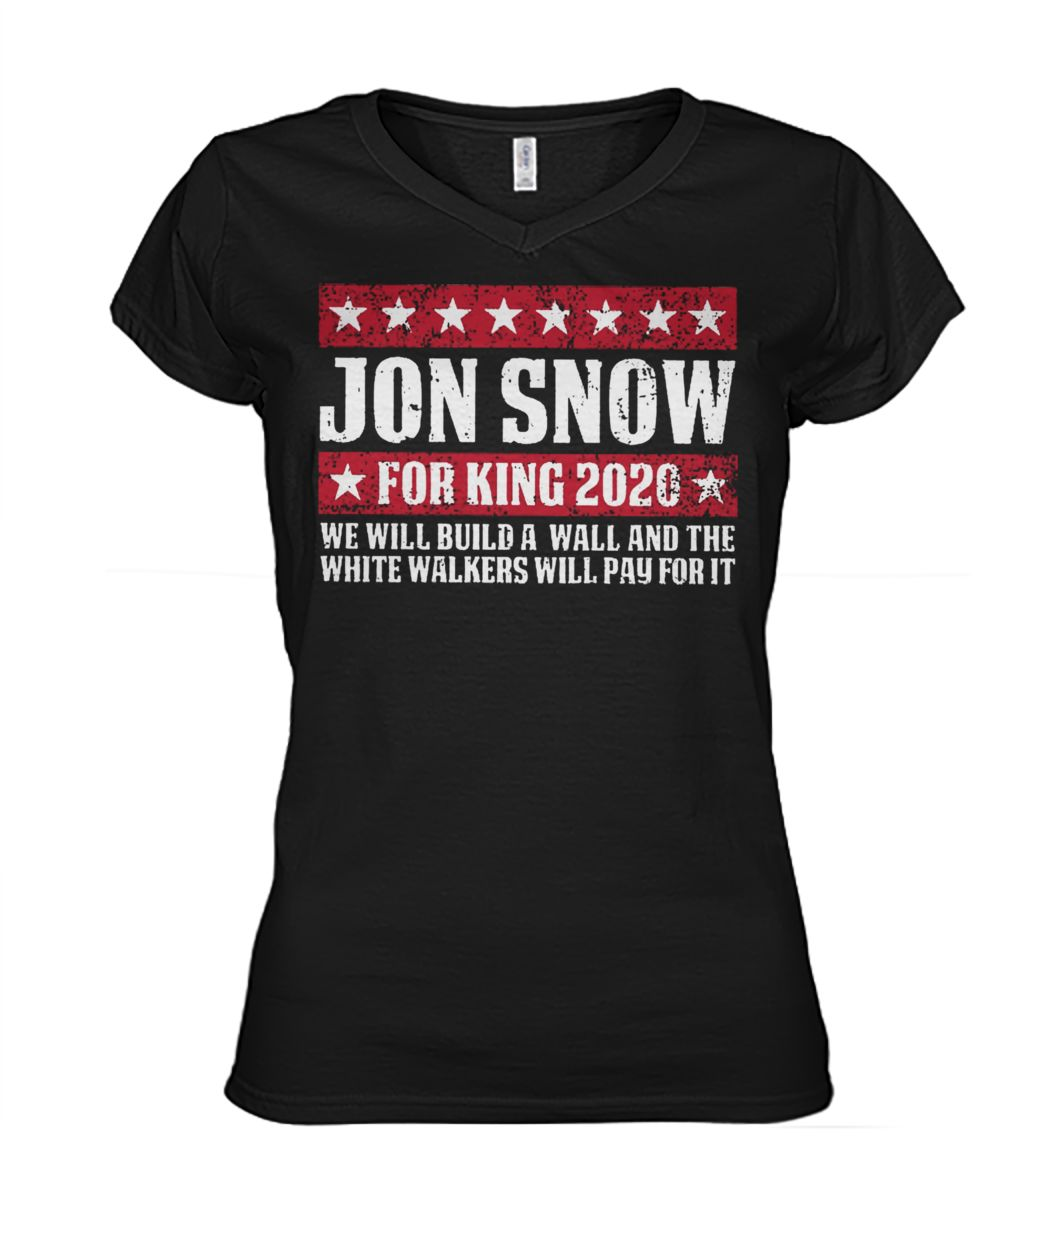 Game of thrones Jon snow for king 2020 women's v-neck